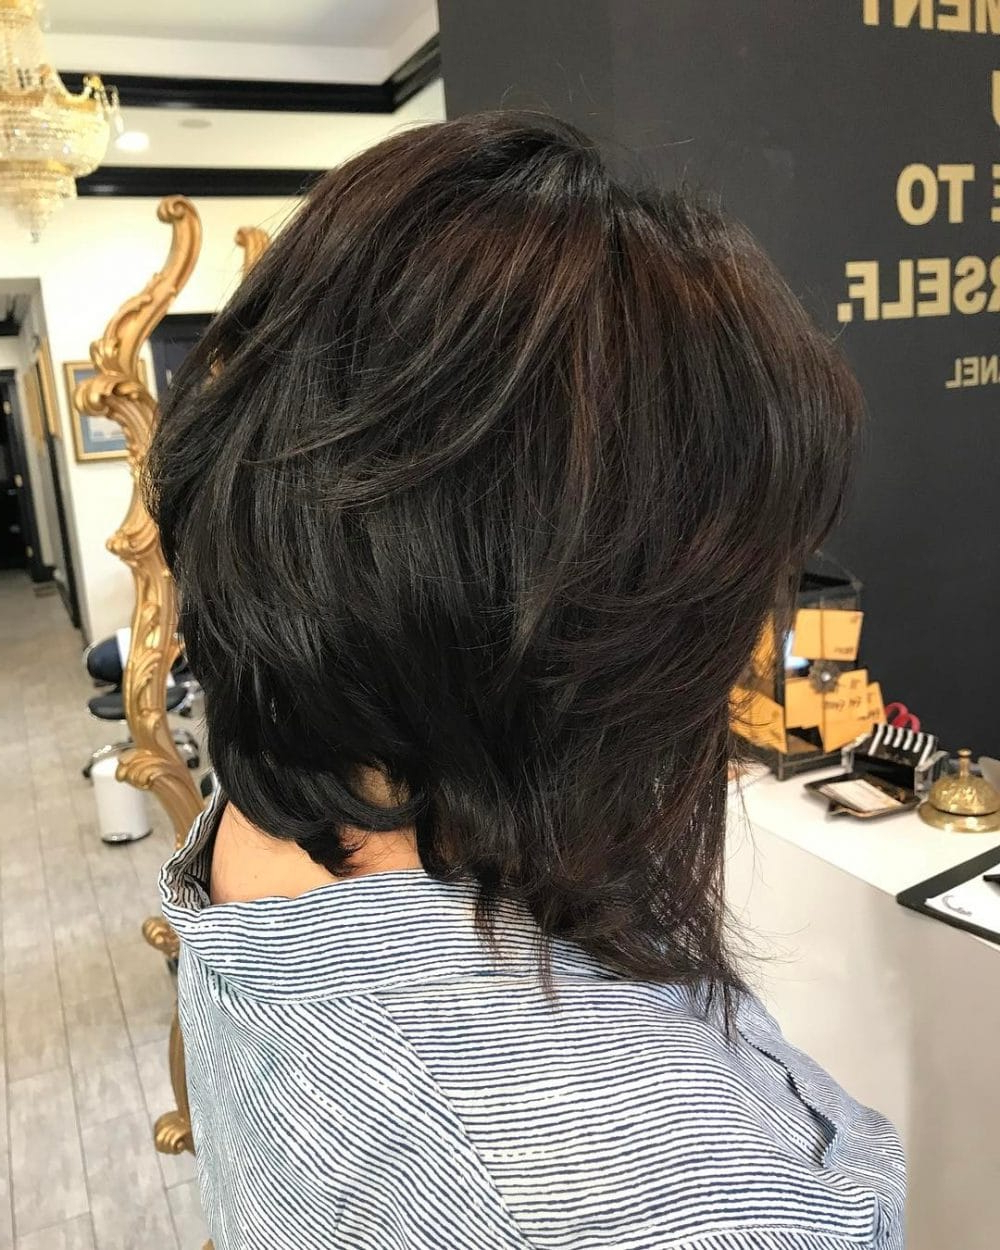 26 Modern Shag Haircuts To Try In 2019 Within Blonde Bob Hairstyles With Shaggy Crown Layers (View 3 of 20)